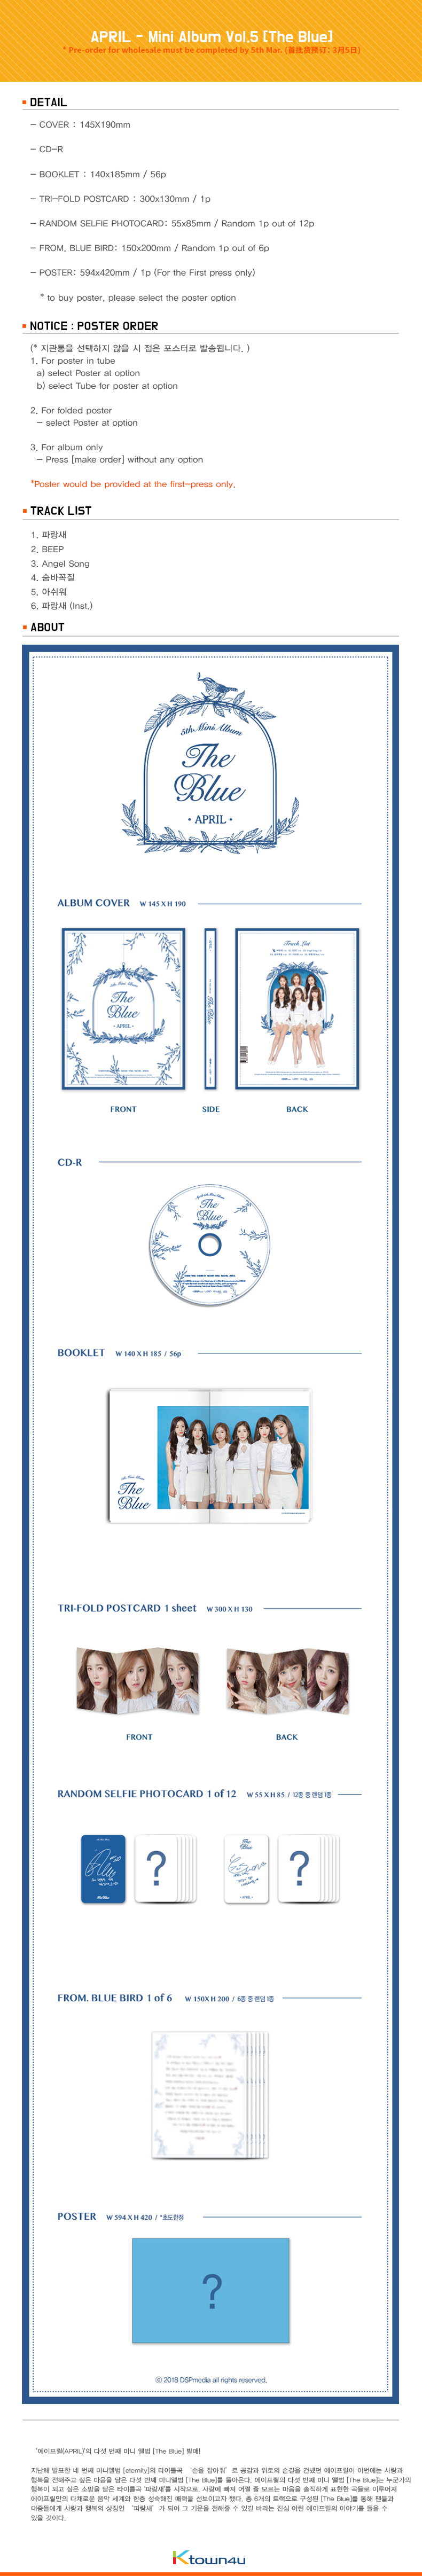 APRIL - Mini Album Vol.5 [The Blue]